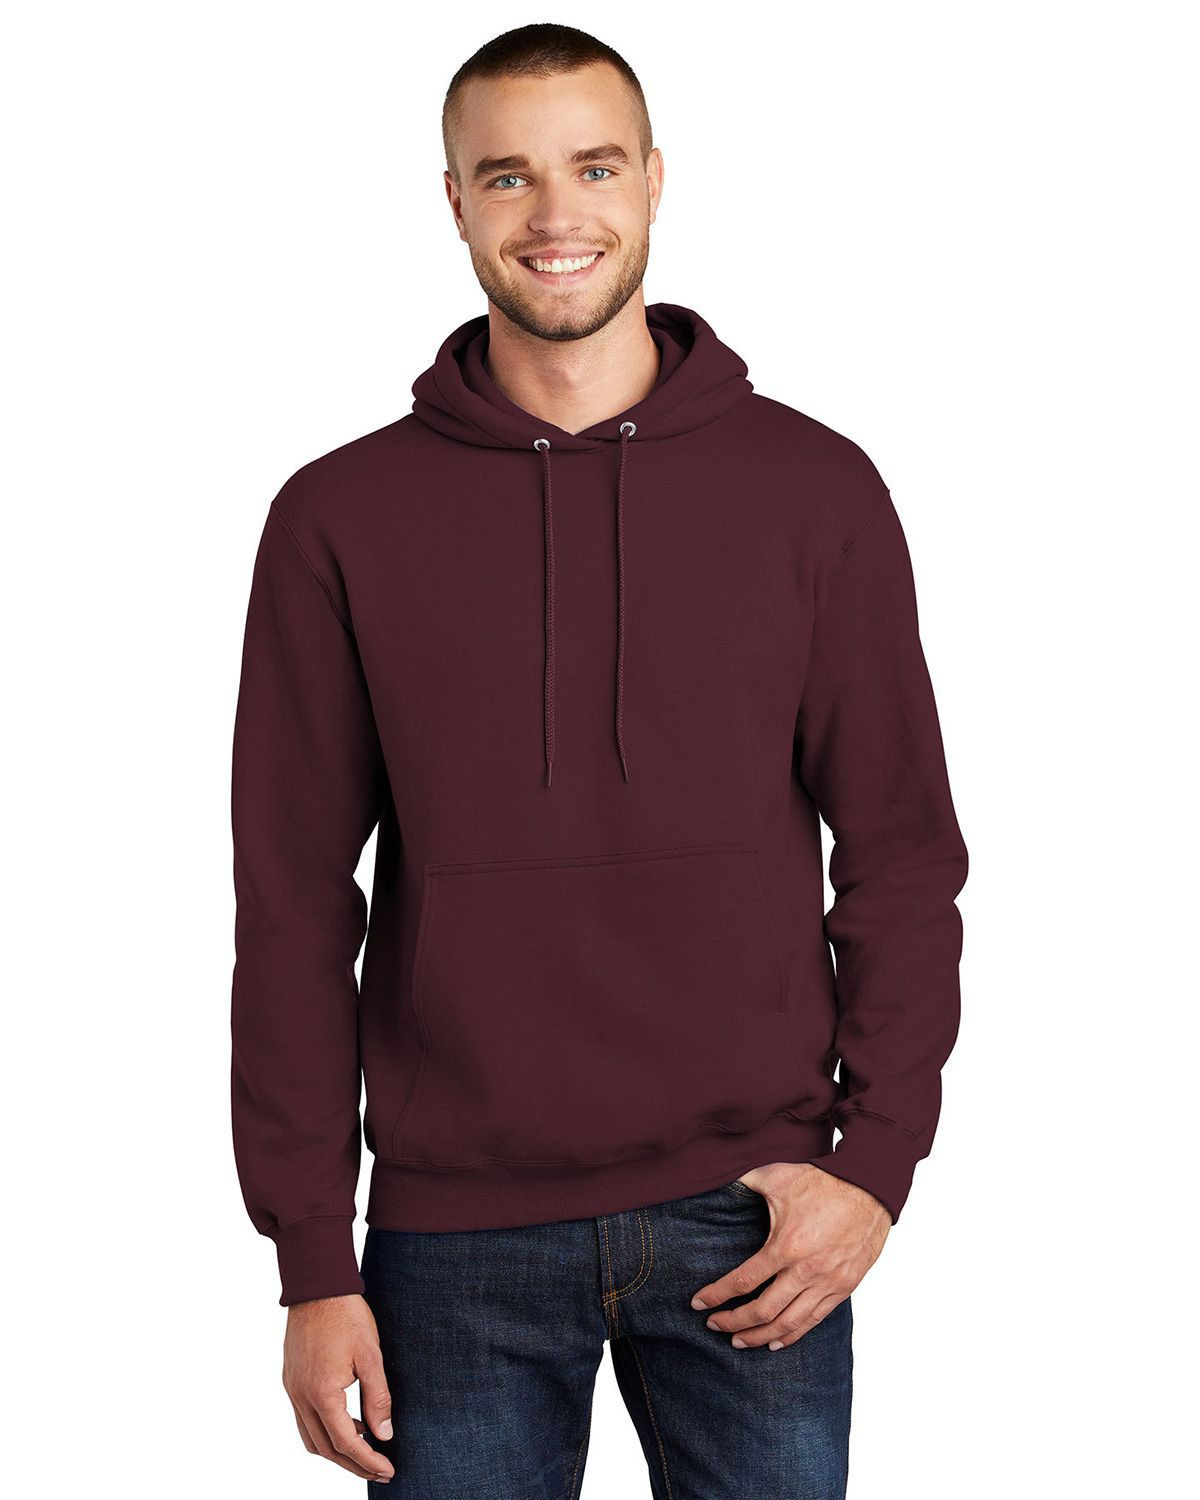 Port & Company PC90H Pullover Hooded Sweatshirt - Maroon - S PC90H